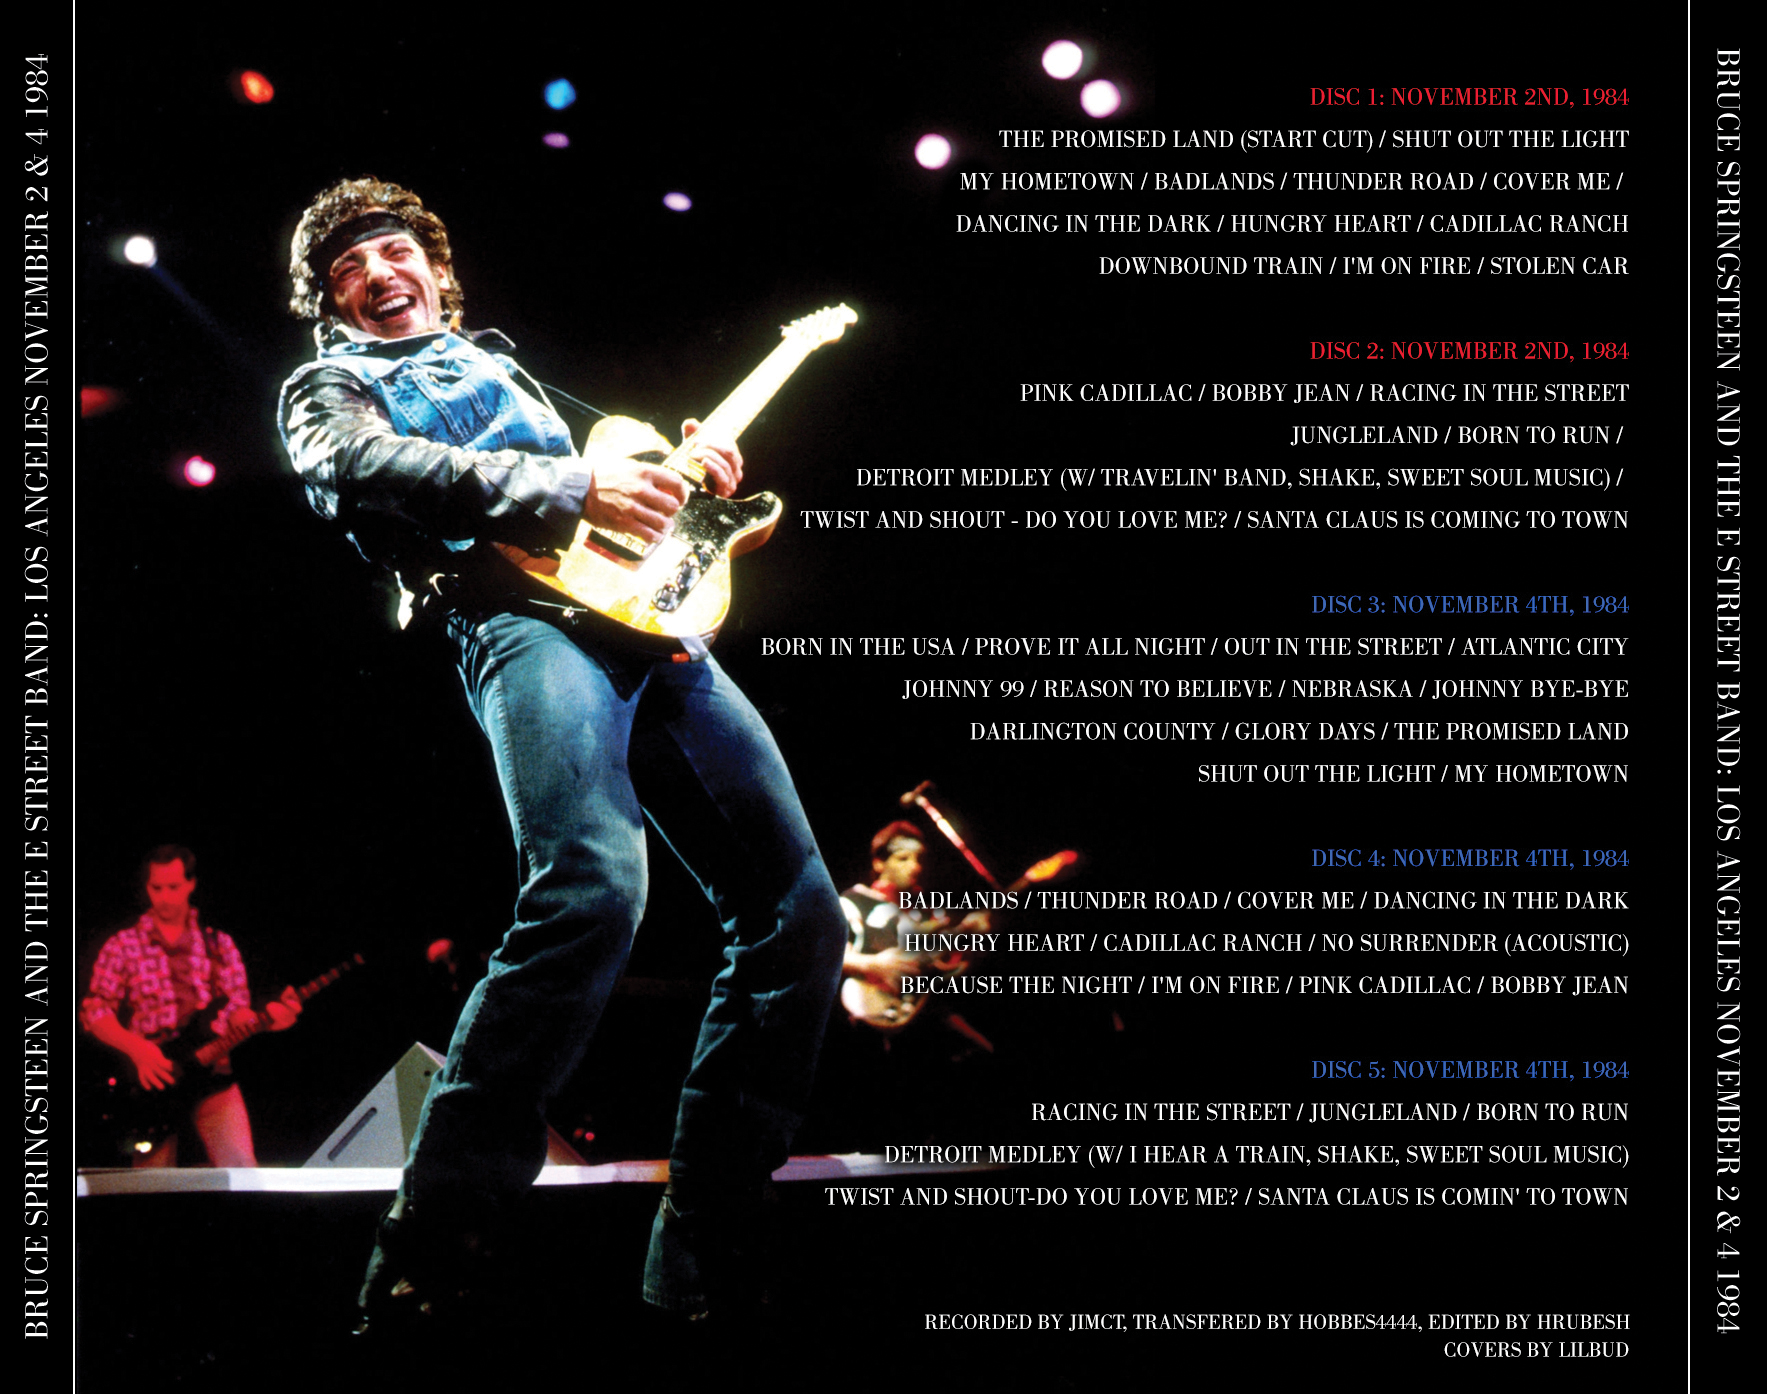 backcover_copy.png